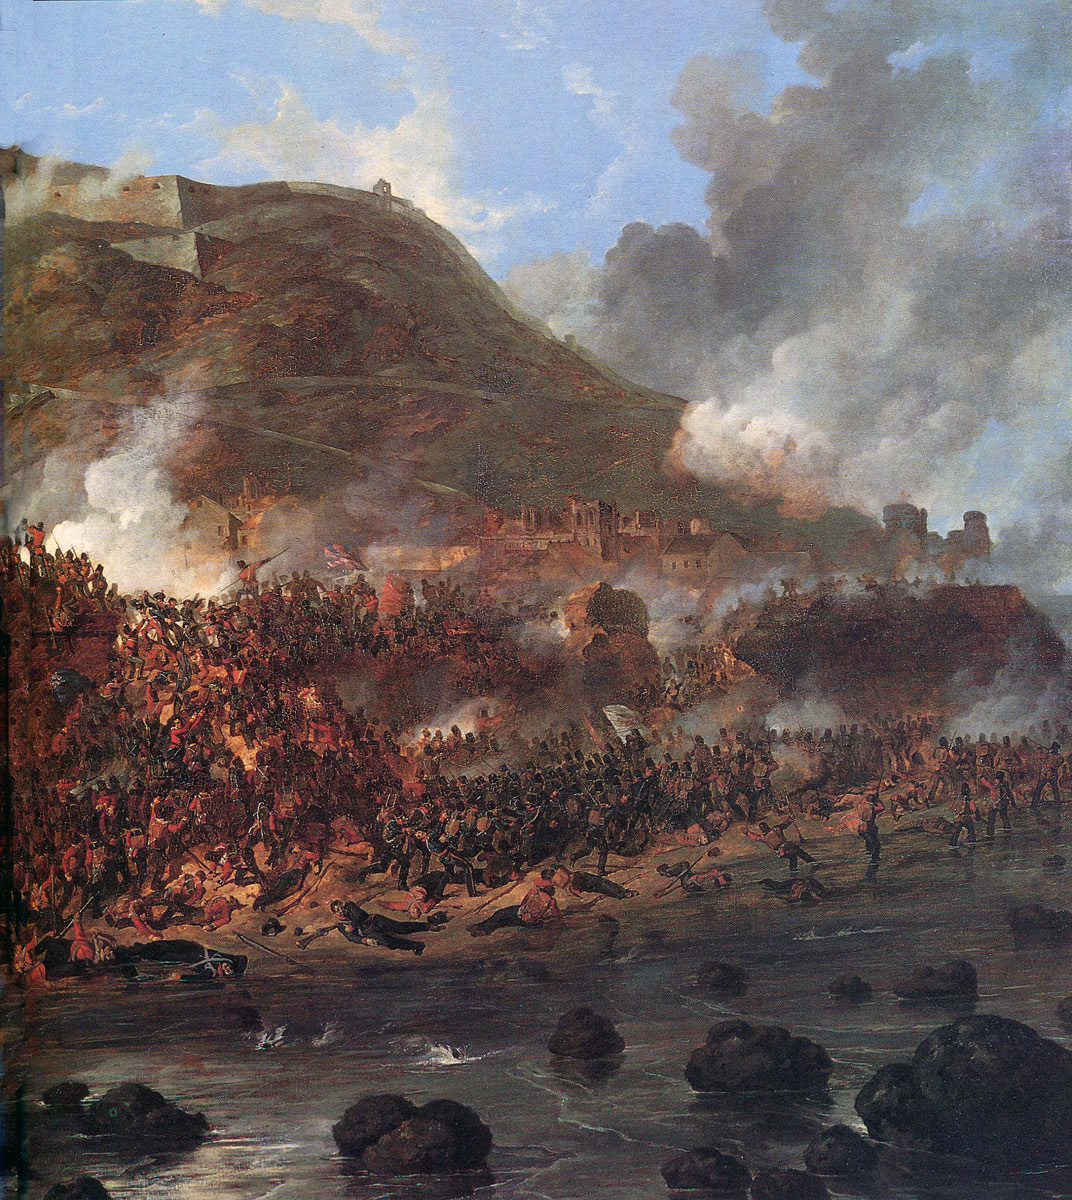 Storming of San Sebastian between 11th July and 9th September 1813 in the Peninsular War: picture by Denis Dighton